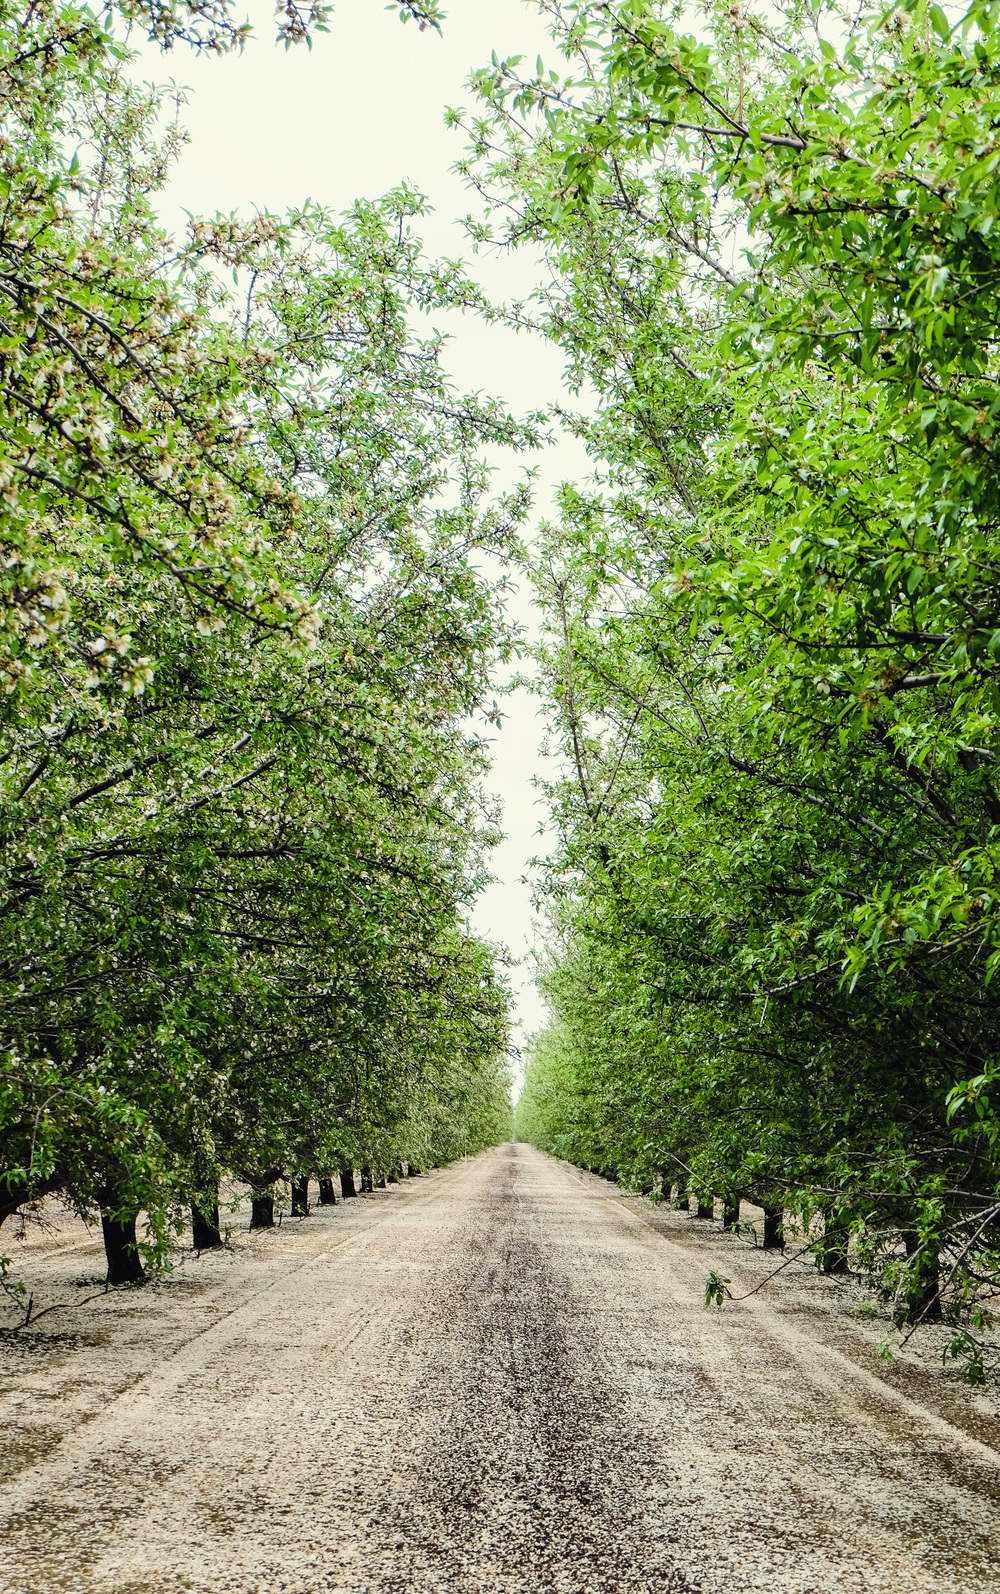 ON THE WAY TO MONTEREY, WE Got lost on Twisselman Road in Lost Hills, CA where we SPOTTED AND STOPPED FOR this beautiful, blooming Pistachio Orchard.